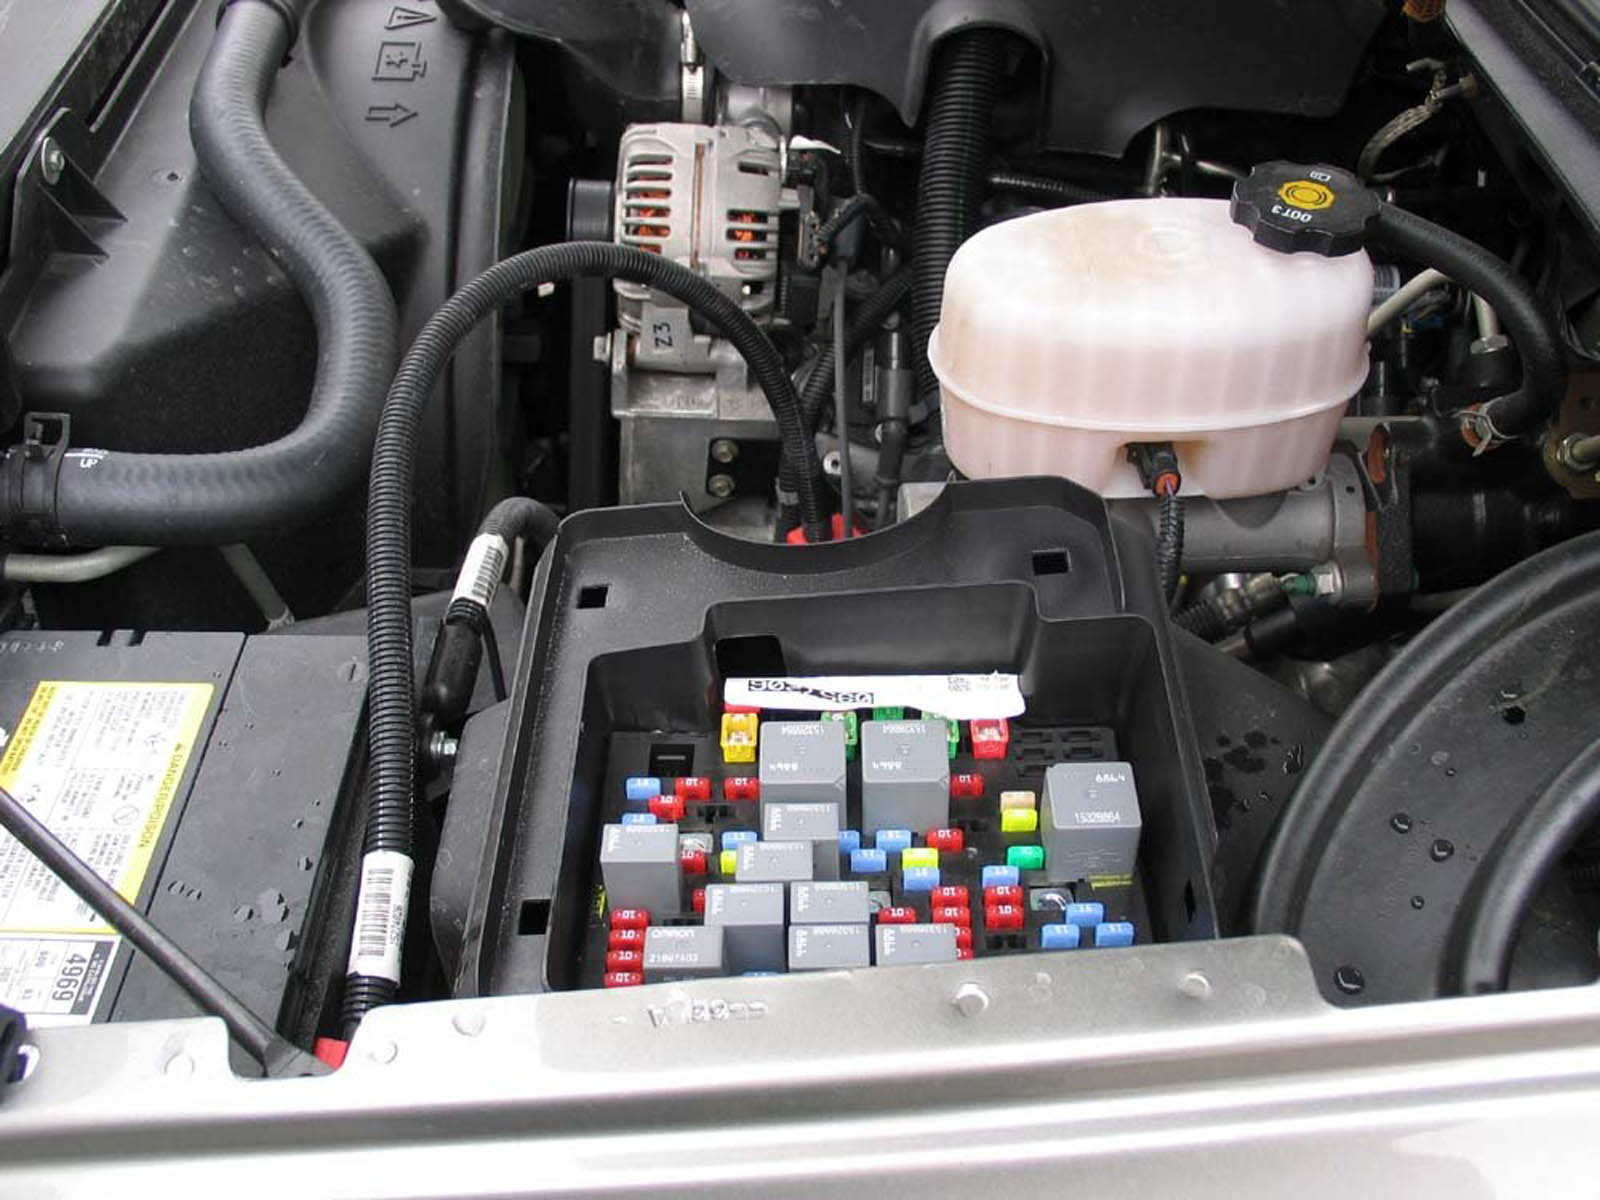 MMMay 27 Fuse Box 04 69845 chevrolet silverado gmt800 1999 2006 fuse box diagram chevroletforum Chevy S10 Fuse Box Diagram at mifinder.co